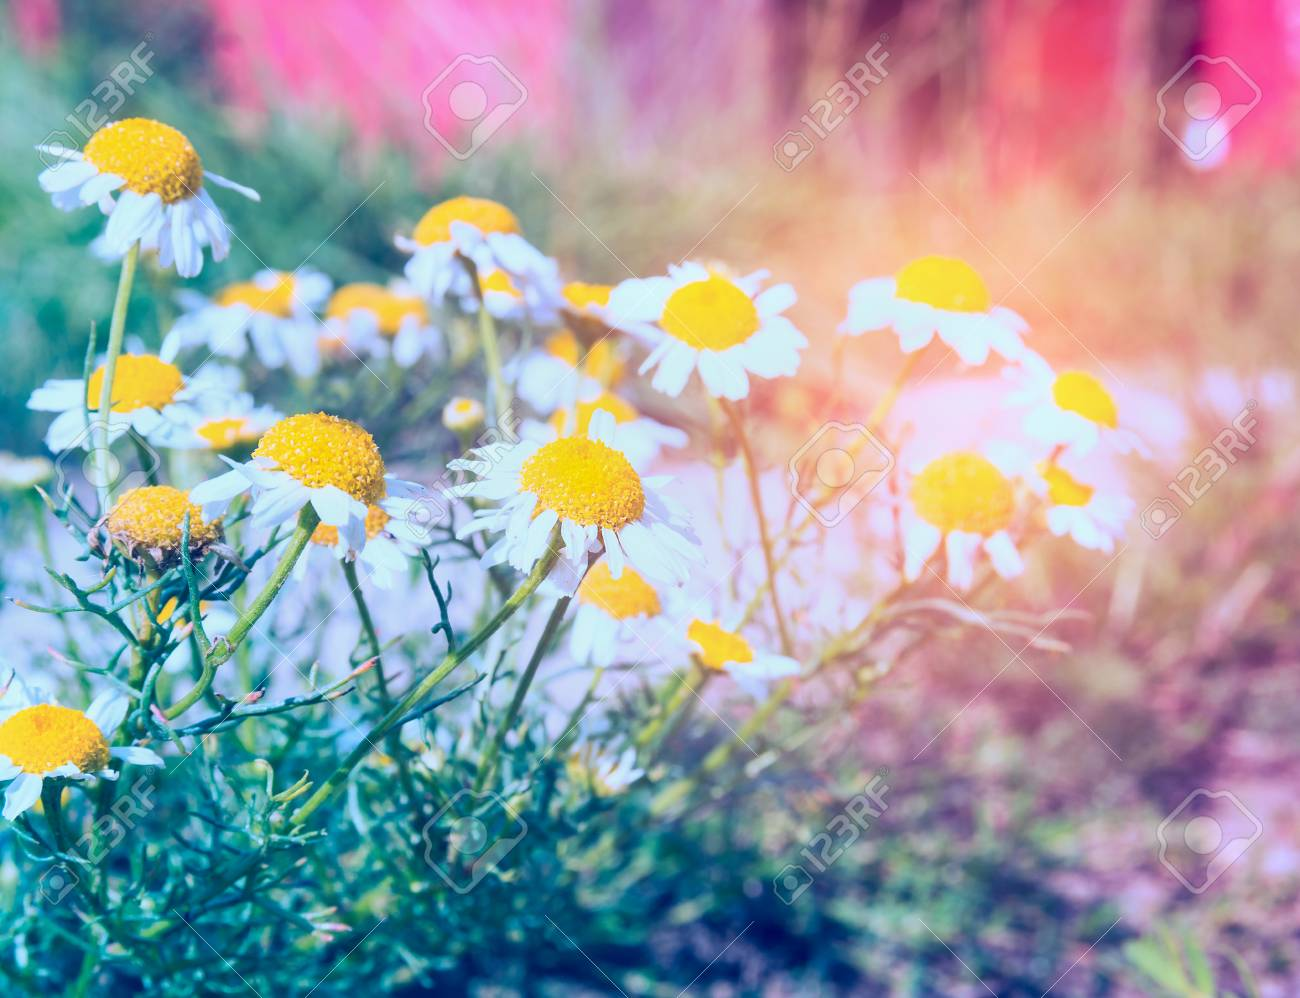 Wild Summer Garden With Daisies Flowers In Sun Shine Toned Stock